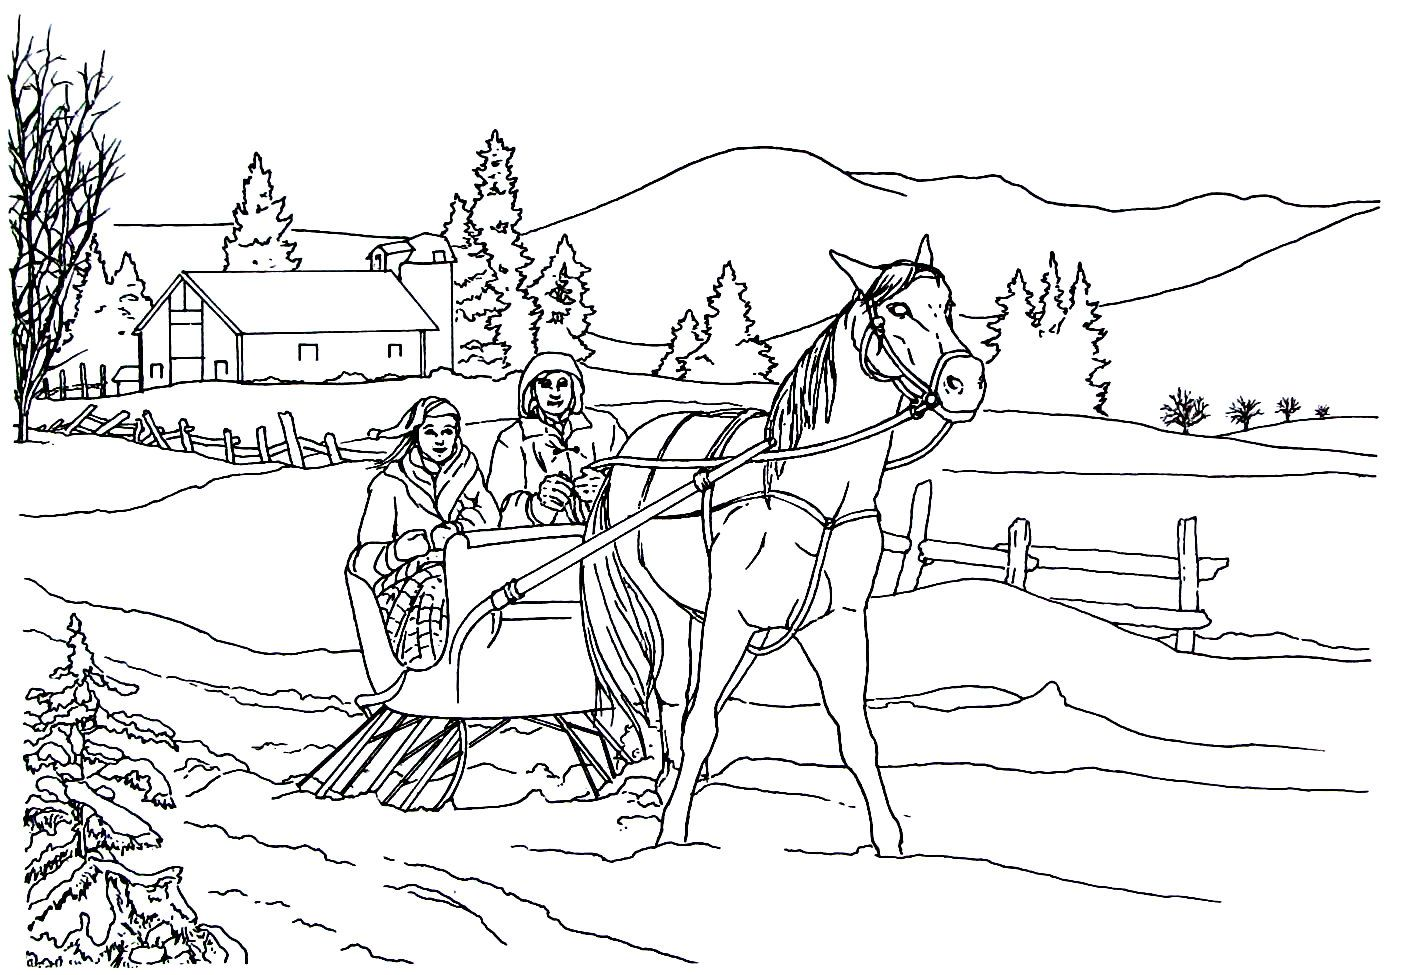 Enjoying A Sleigh Ride Living In The Country Coloring Book Page Coloring Pages Sleigh Ride Coloring Book Pages [ 975 x 1402 Pixel ]